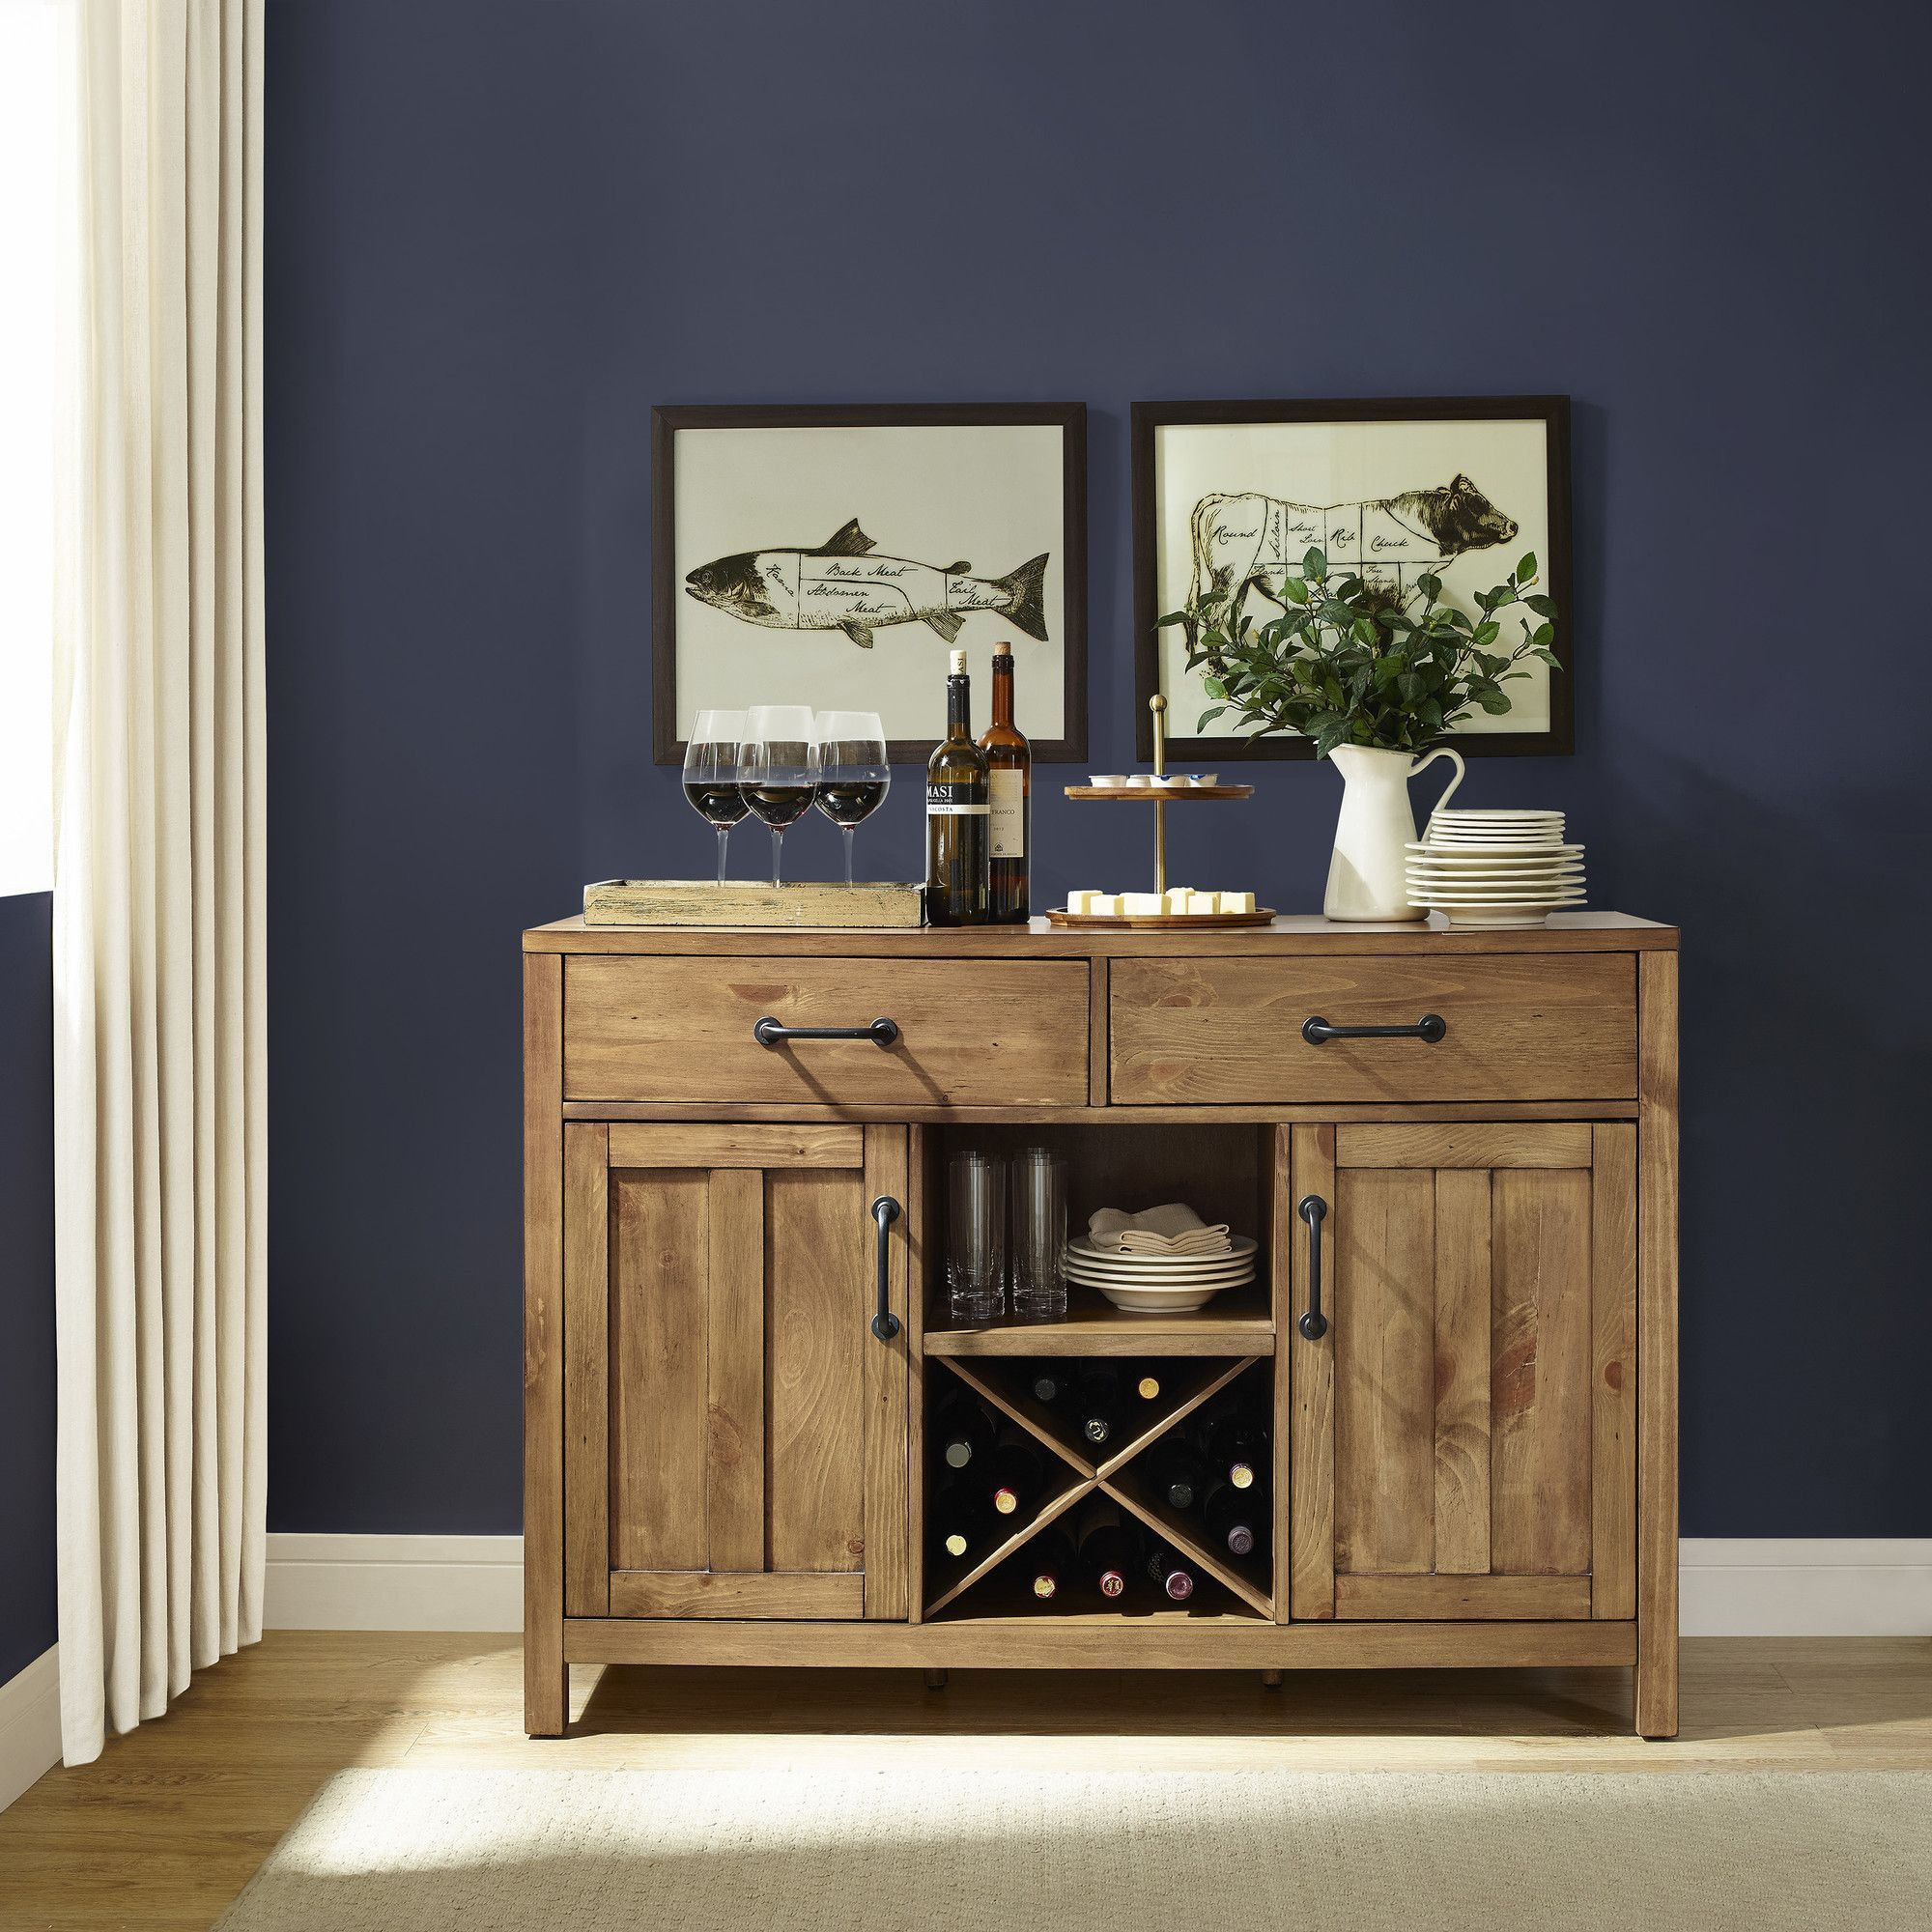 Shop Wayfair for Sideboards & Buffets to match every style and